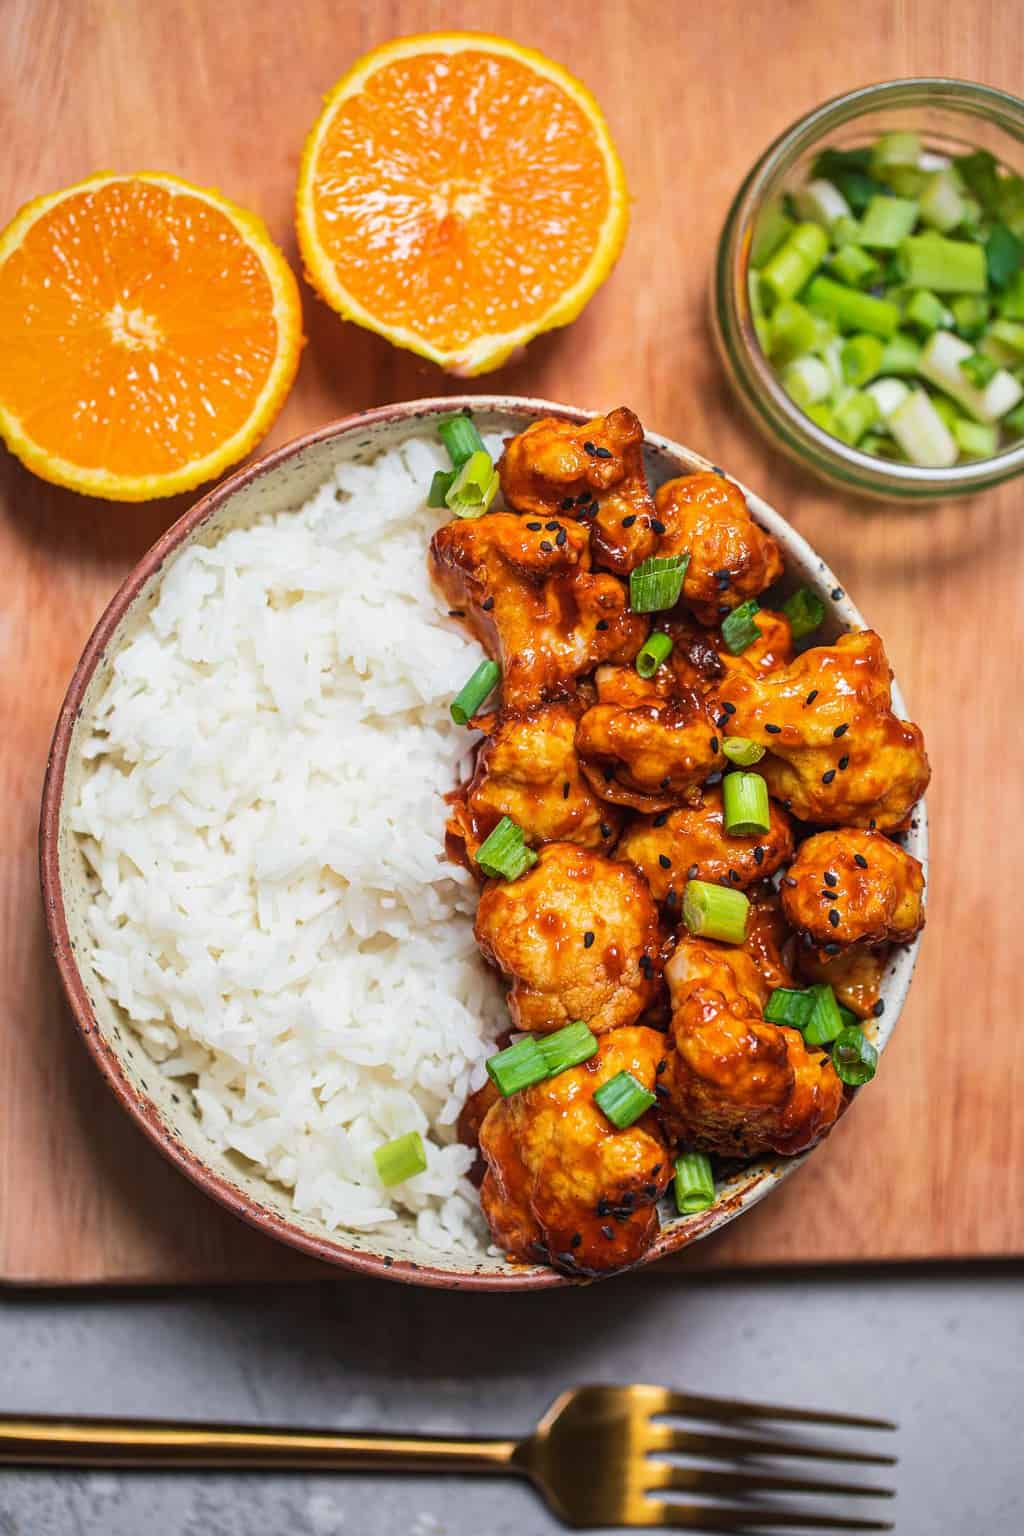 Bowl with orange cauliflower resting on a bed of rice